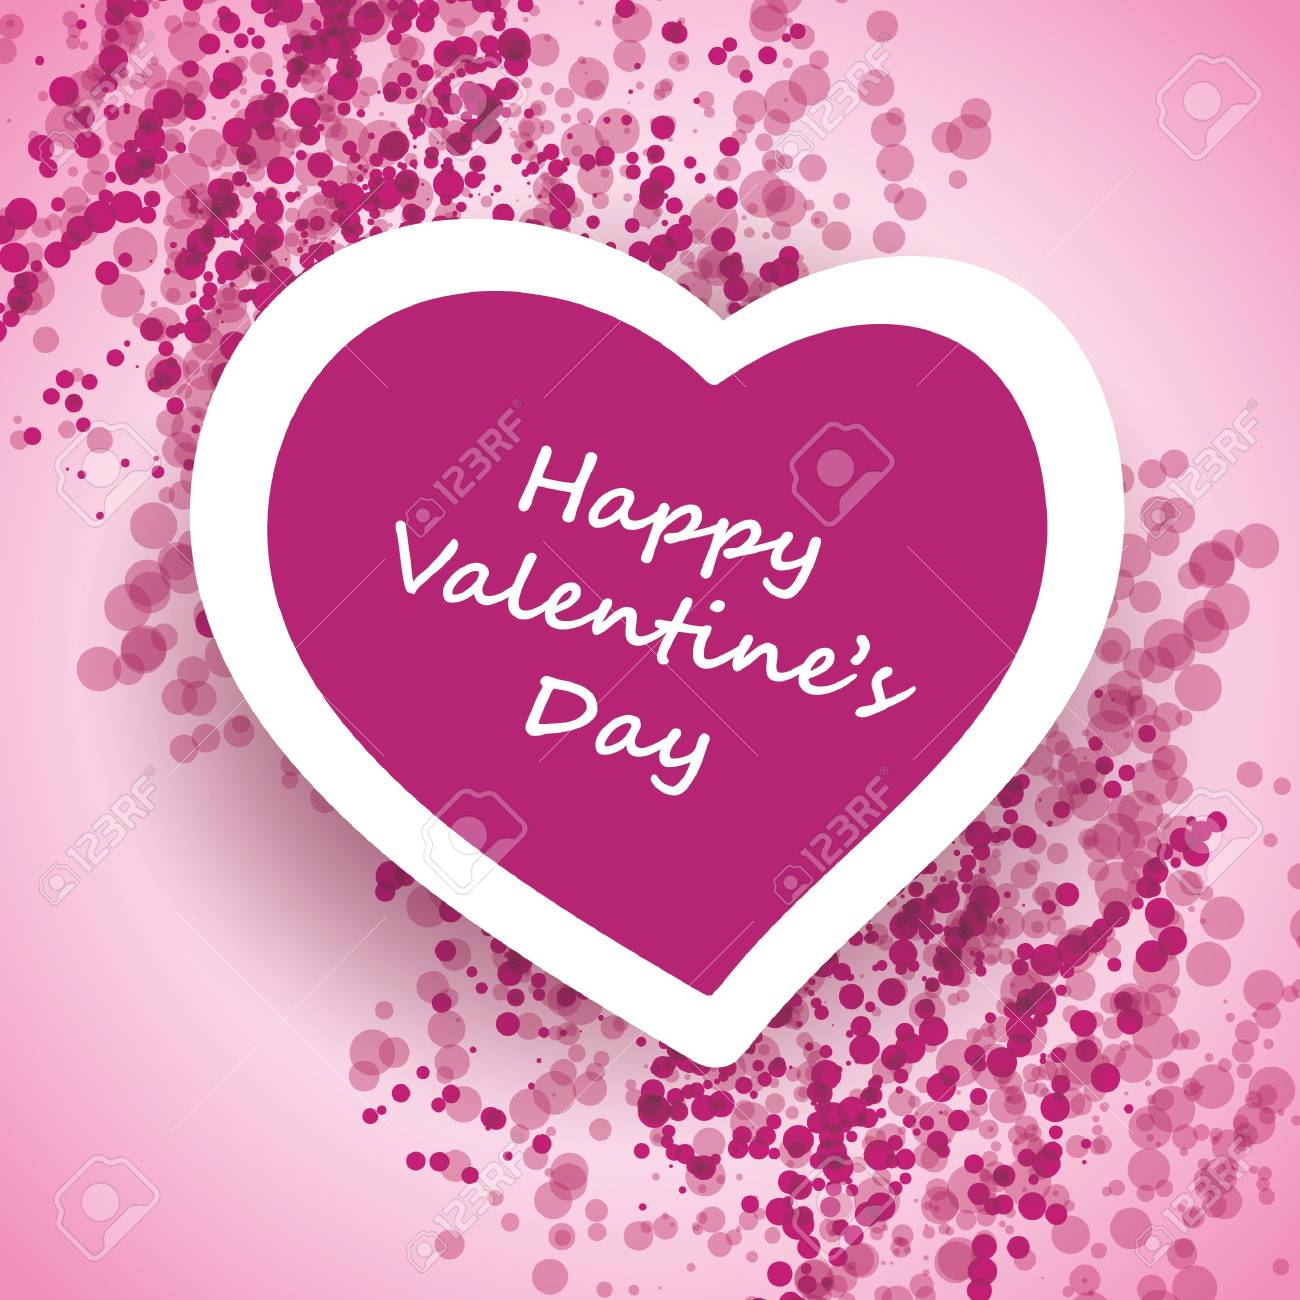 Valentines Day Card Stock Vector - 12407445